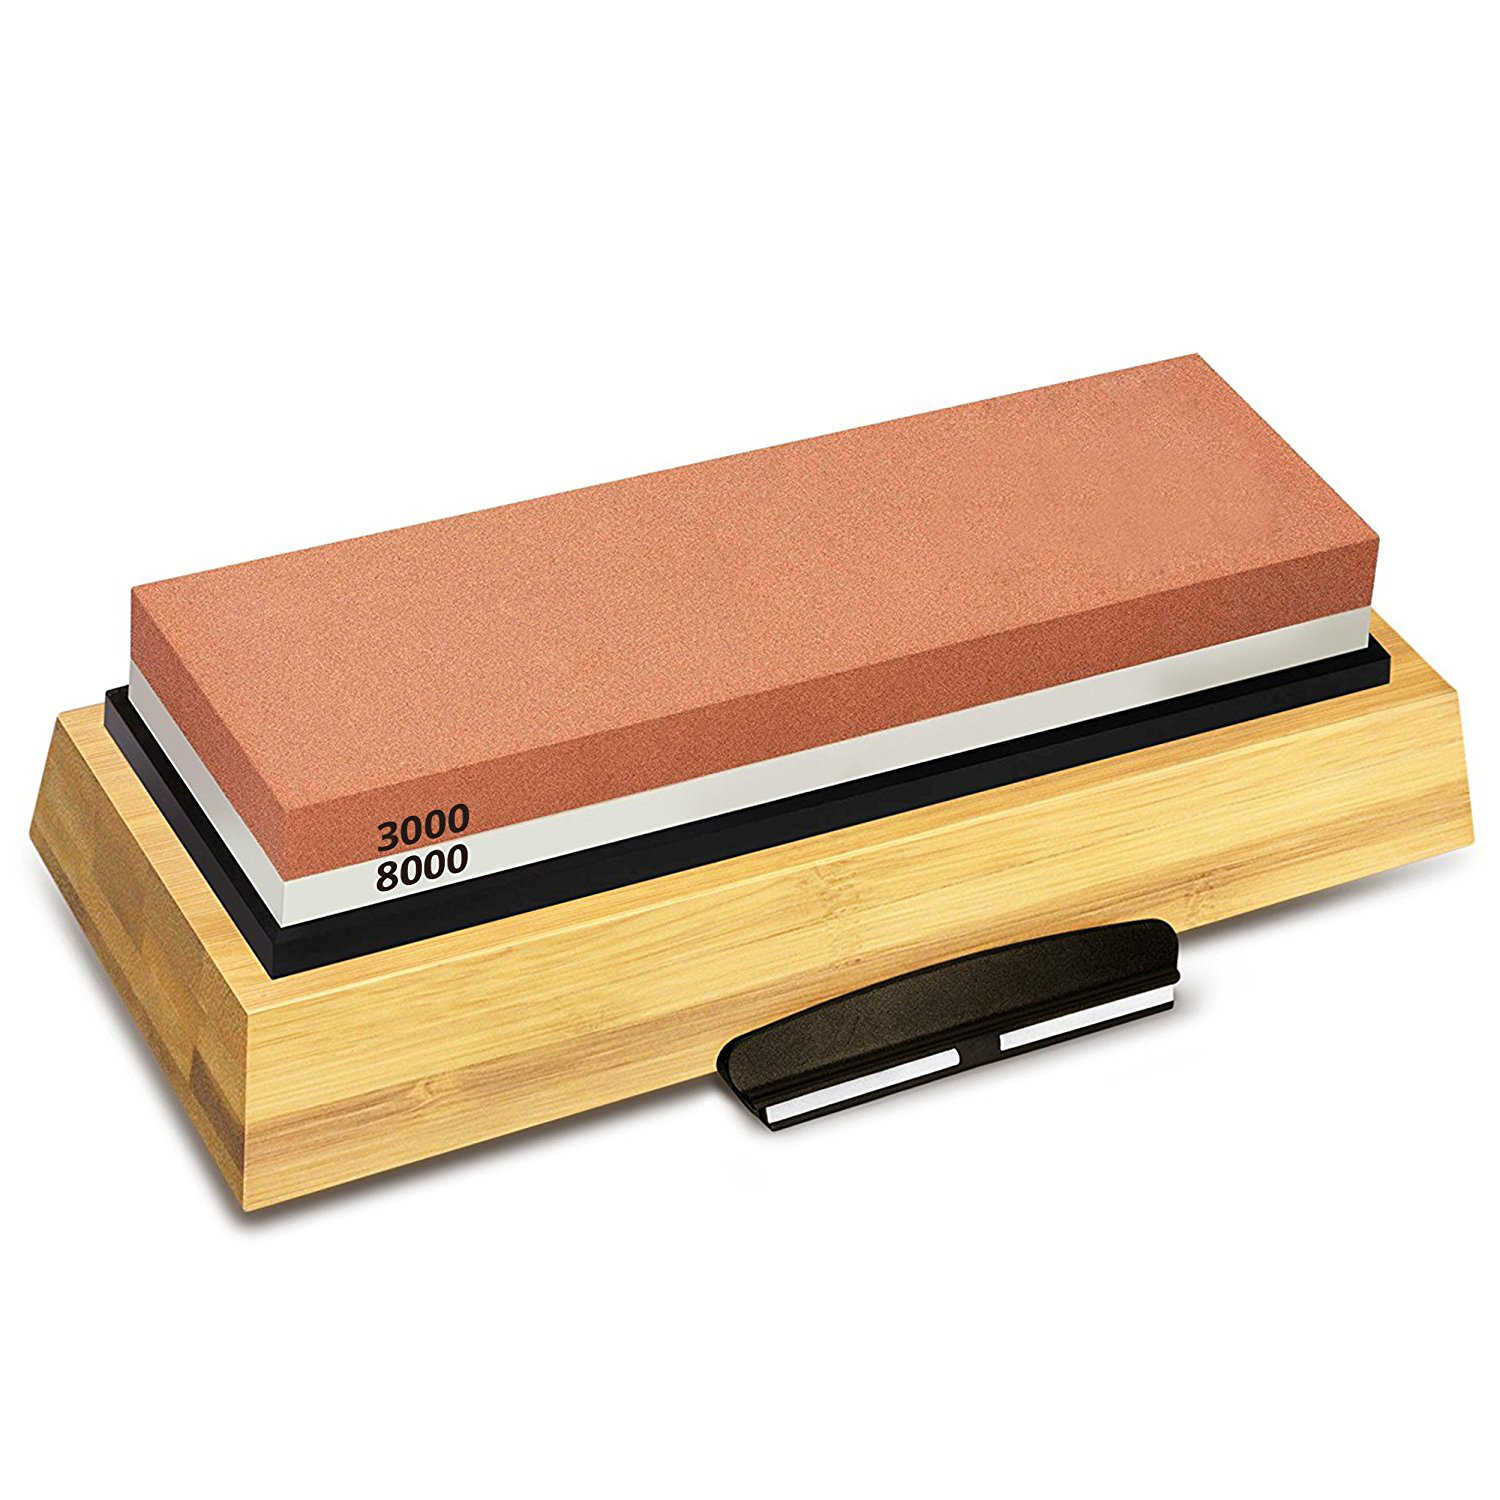 Sharpening Stone 3000 & 8000 Grit - Double Sided Whetstone Set For Knives With Non-Slip Bamboo Base and Free Angle Guide